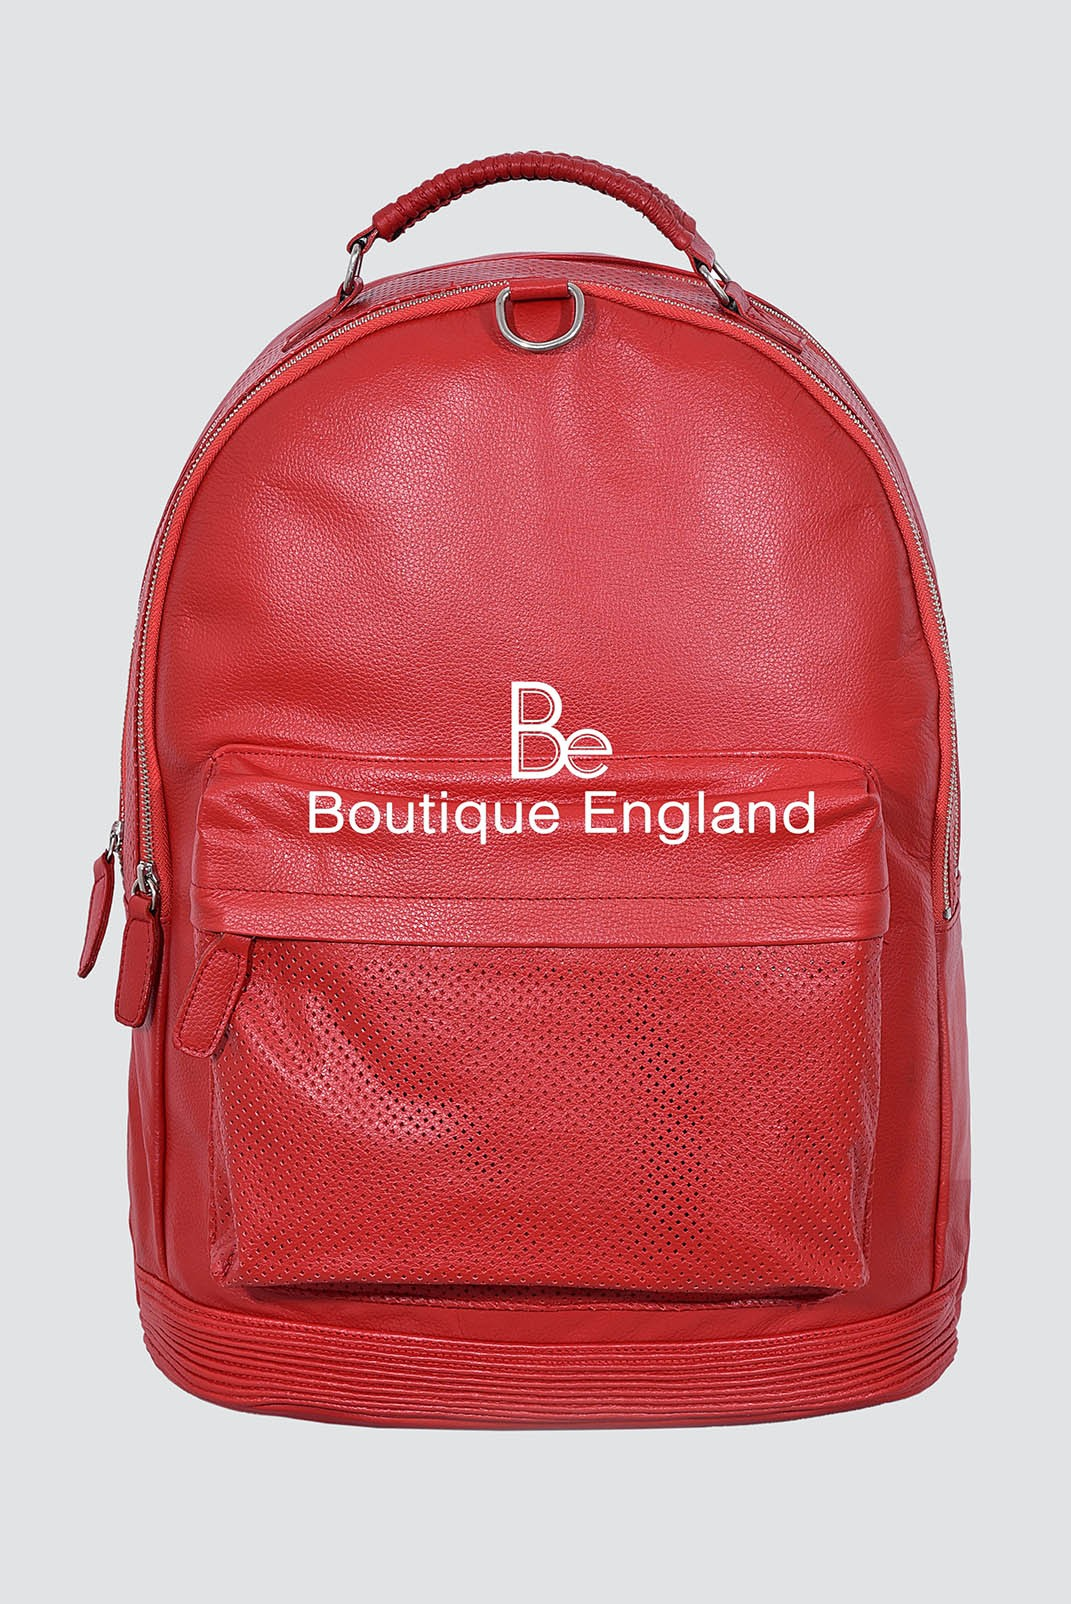 NEW LARGE 1005 Red COWHIDE BACKPACK STYLISH DUFFLE TRAVEL GYM REAL GENUINE LEATHER BAG